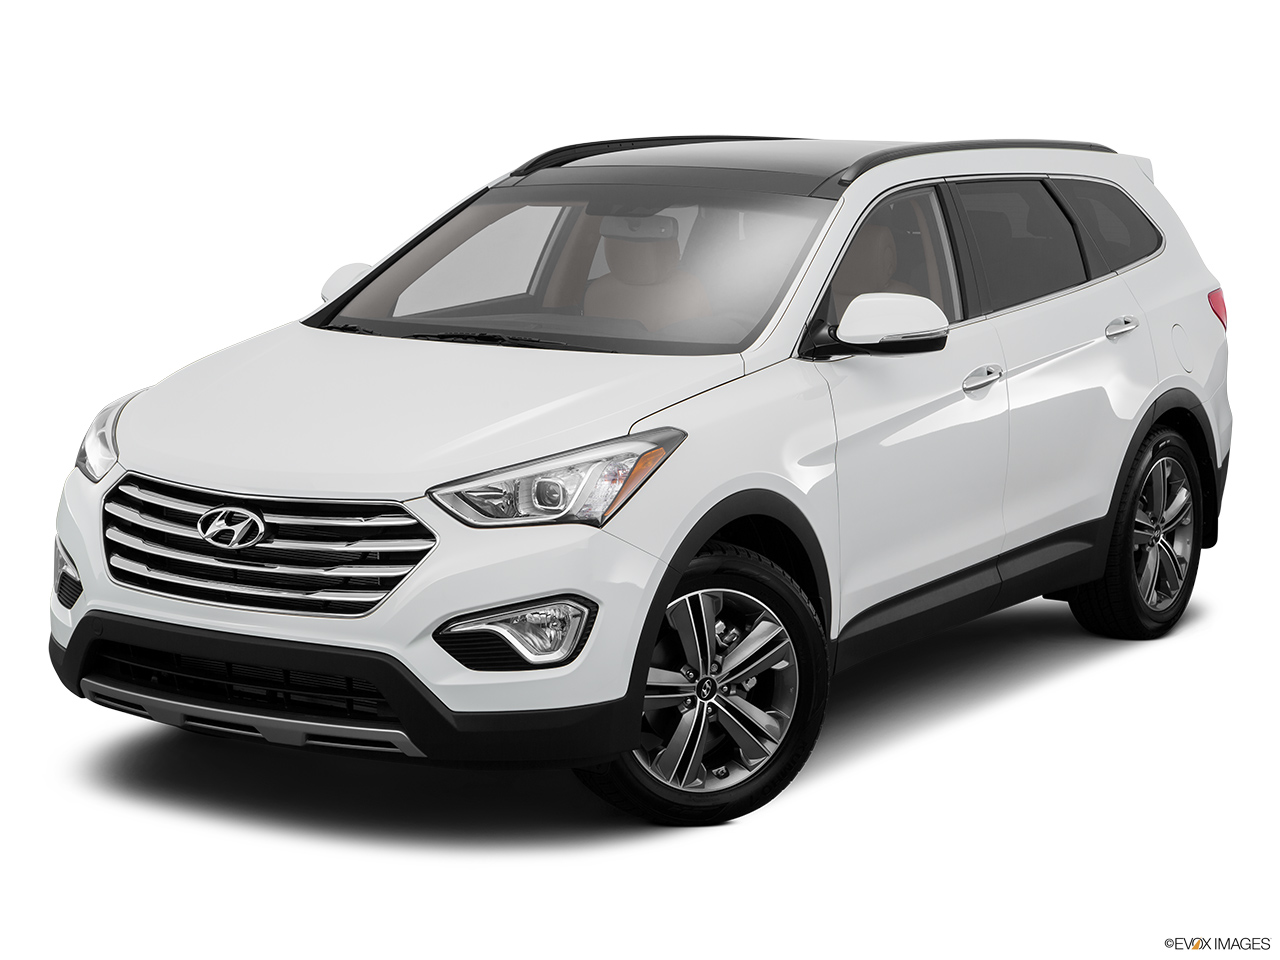 hyundai grand santa fe 2016 3 3l awd top in oman new car prices specs reviews photos. Black Bedroom Furniture Sets. Home Design Ideas